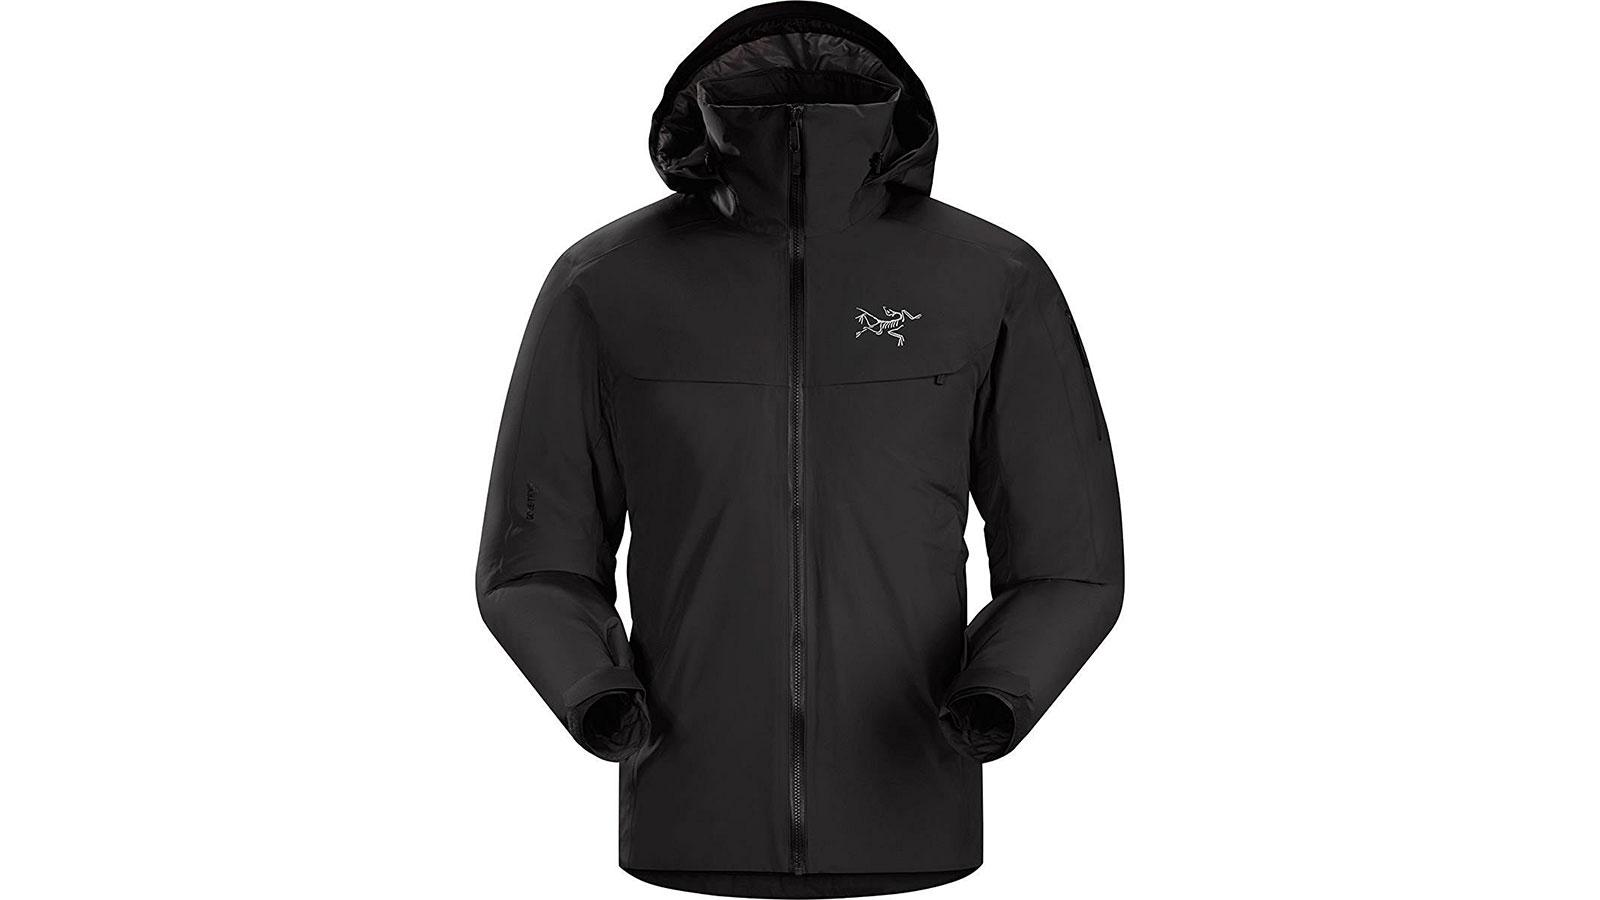 Arcteryx Macai Men's Ski Jacket | The Best Men's Ski Jackets